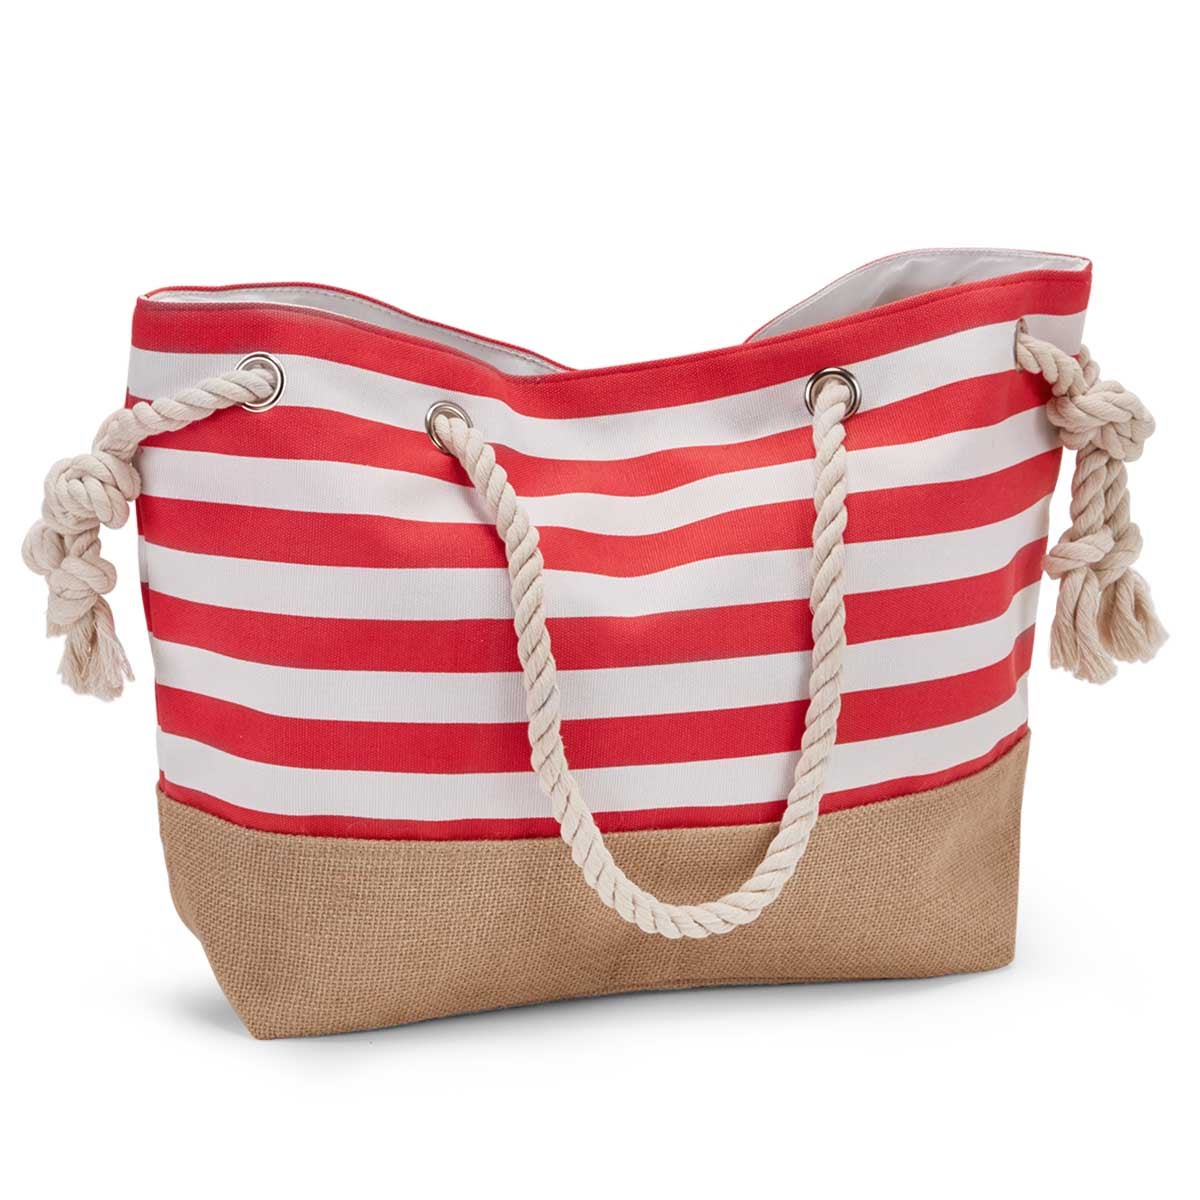 Women's red & white stripe canvas tote bag